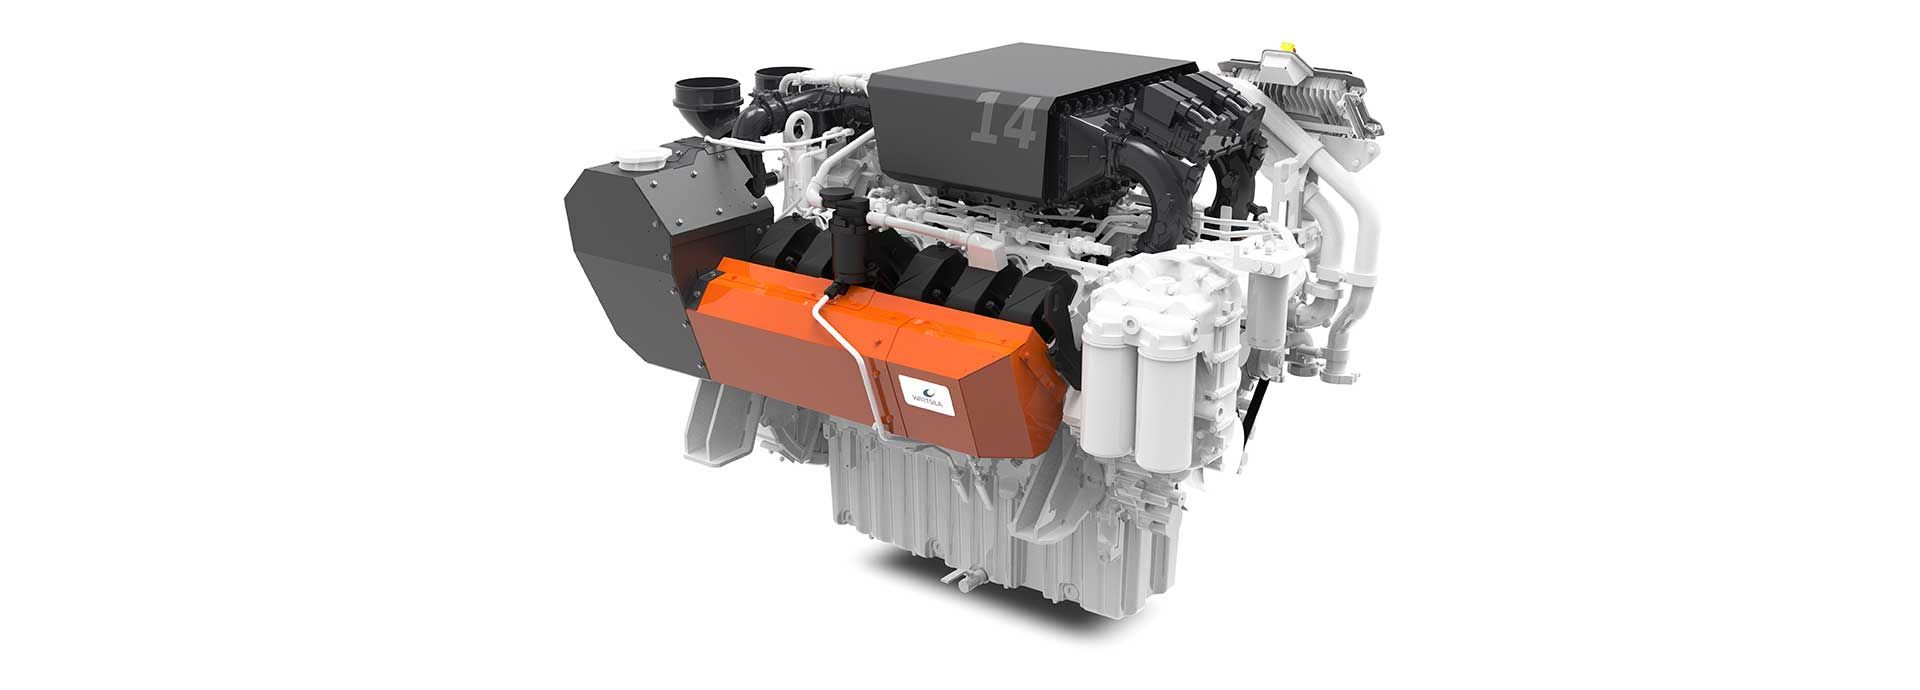 Wärtsilä 14: lighter, smarter and greener